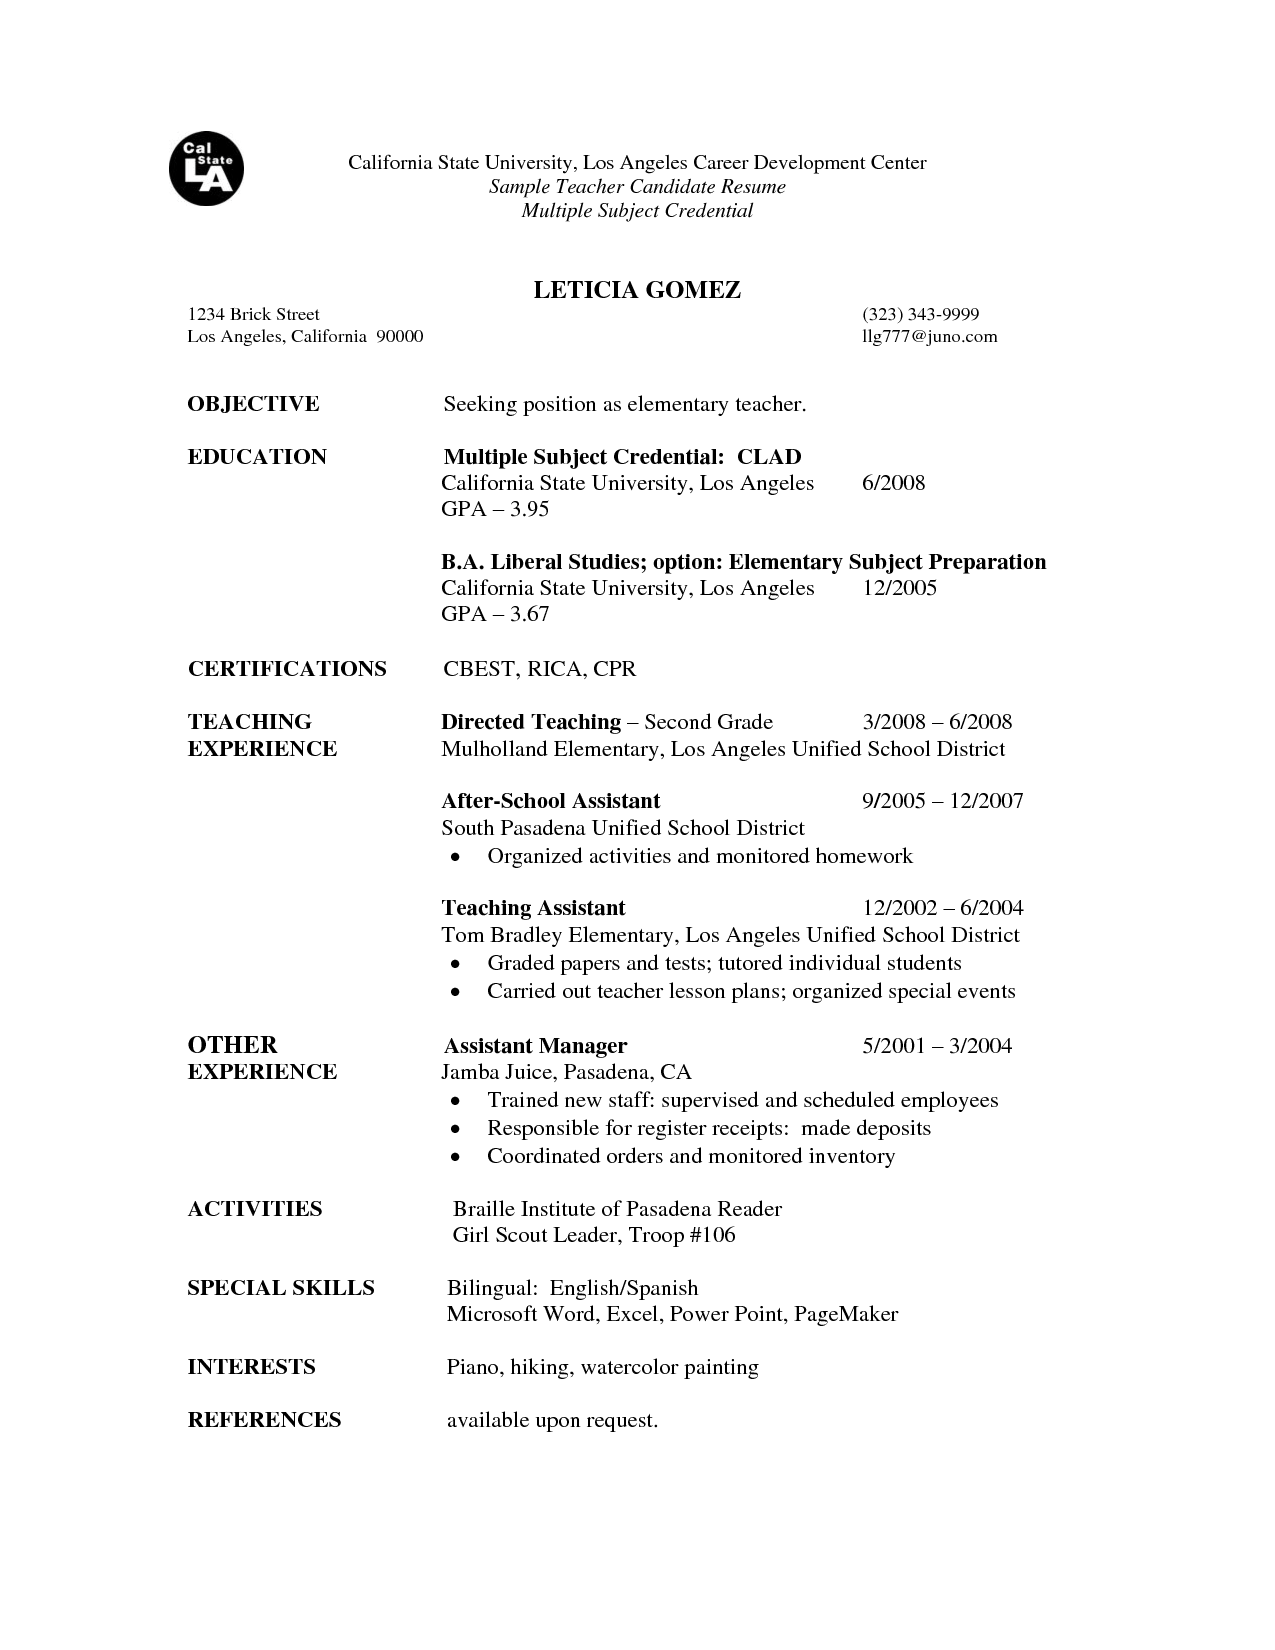 Resume For Elementary Teacher Image Result For First Resume For Teacher Resume